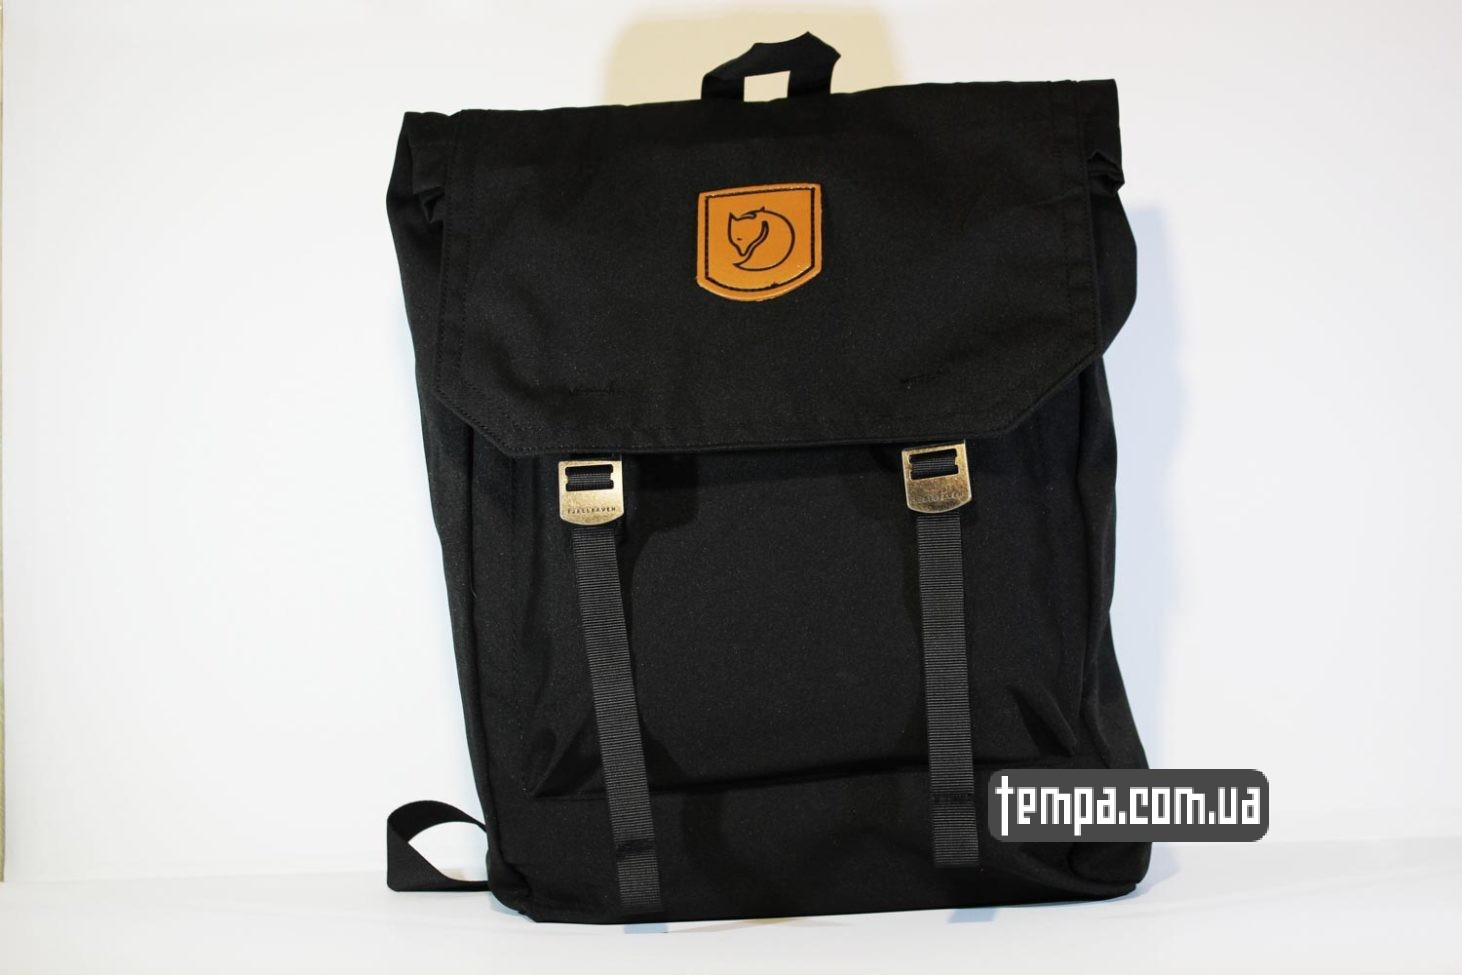 рюкзак сумка Fjallraven Foldsack No.1 Backpack черный